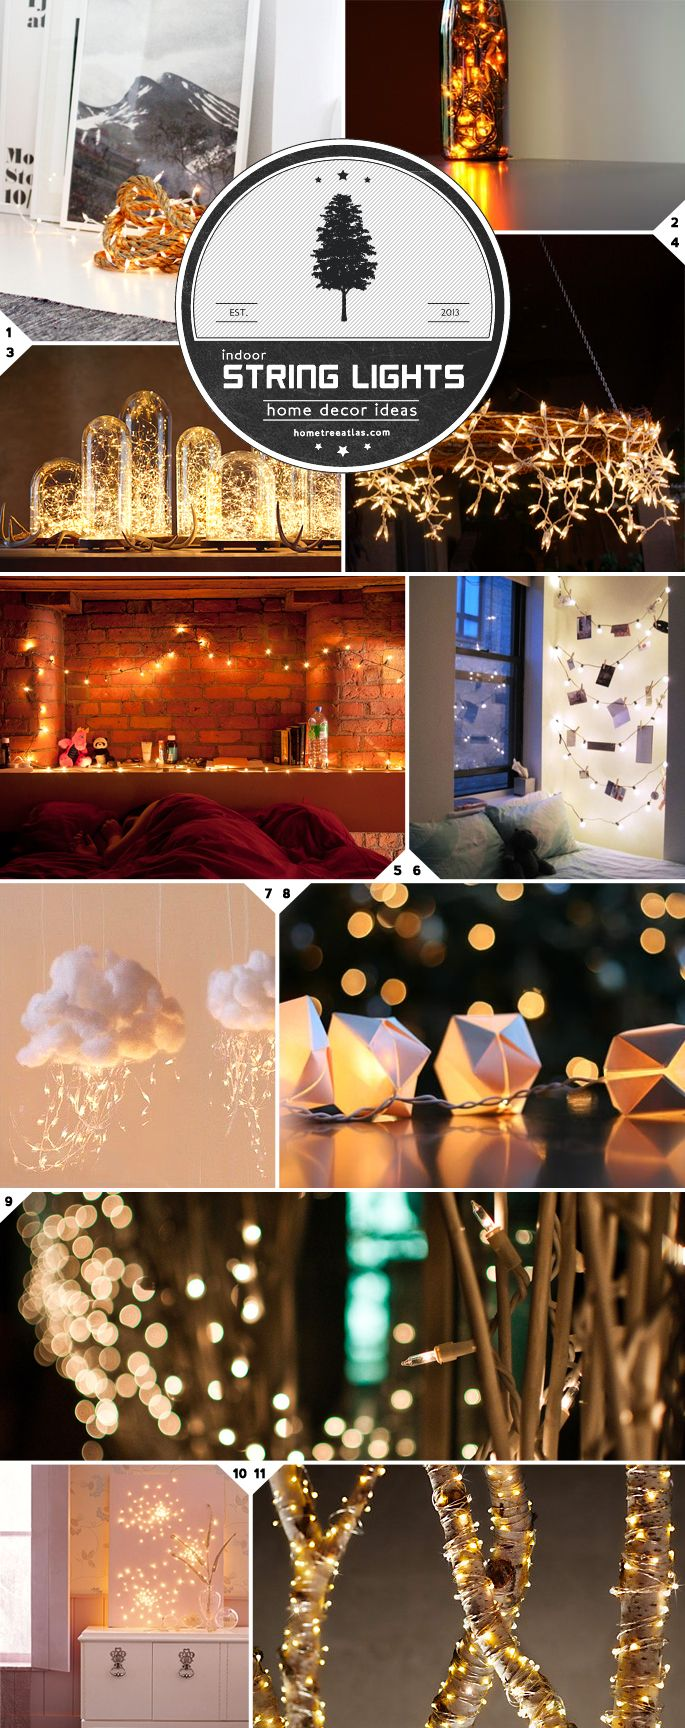 Home Decor Ideas: Beautiful Ways to Use String Lights Indoors